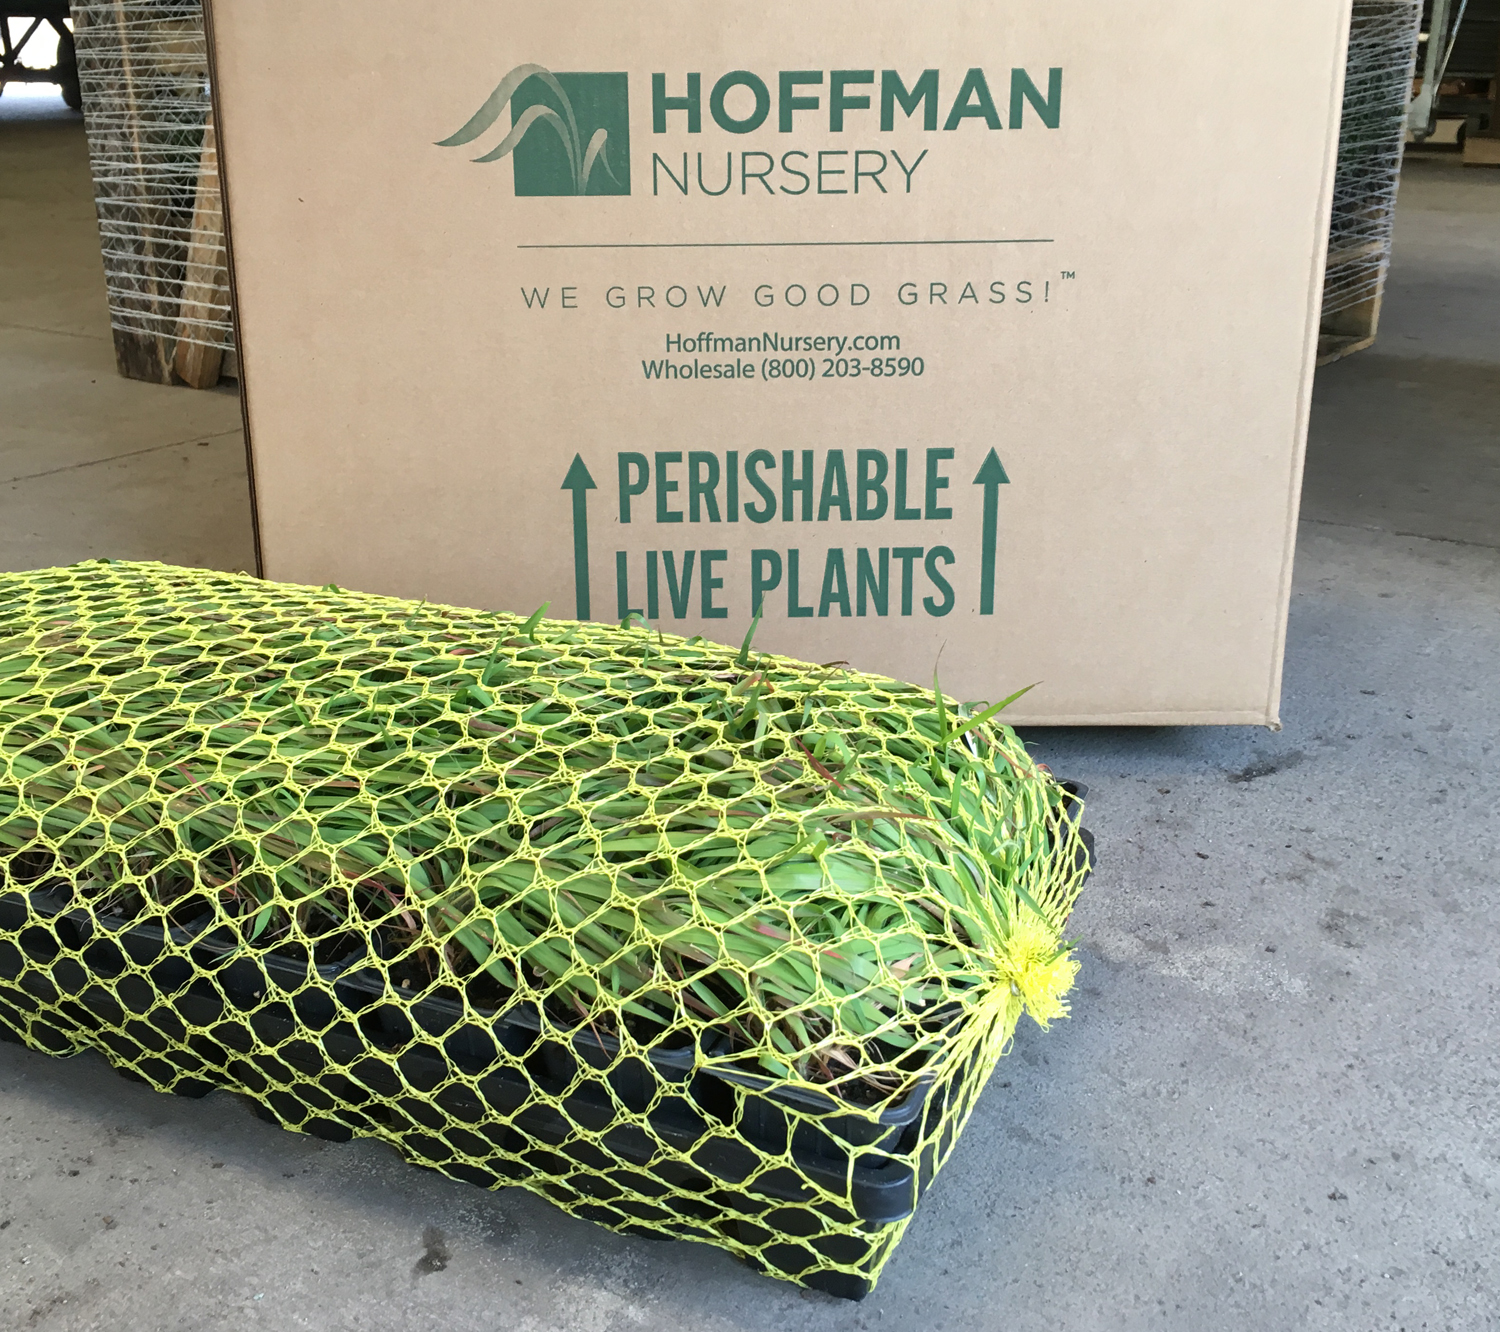 With boxed shipments, plant trays are wrapped in breathable netting to hold the plants securely.